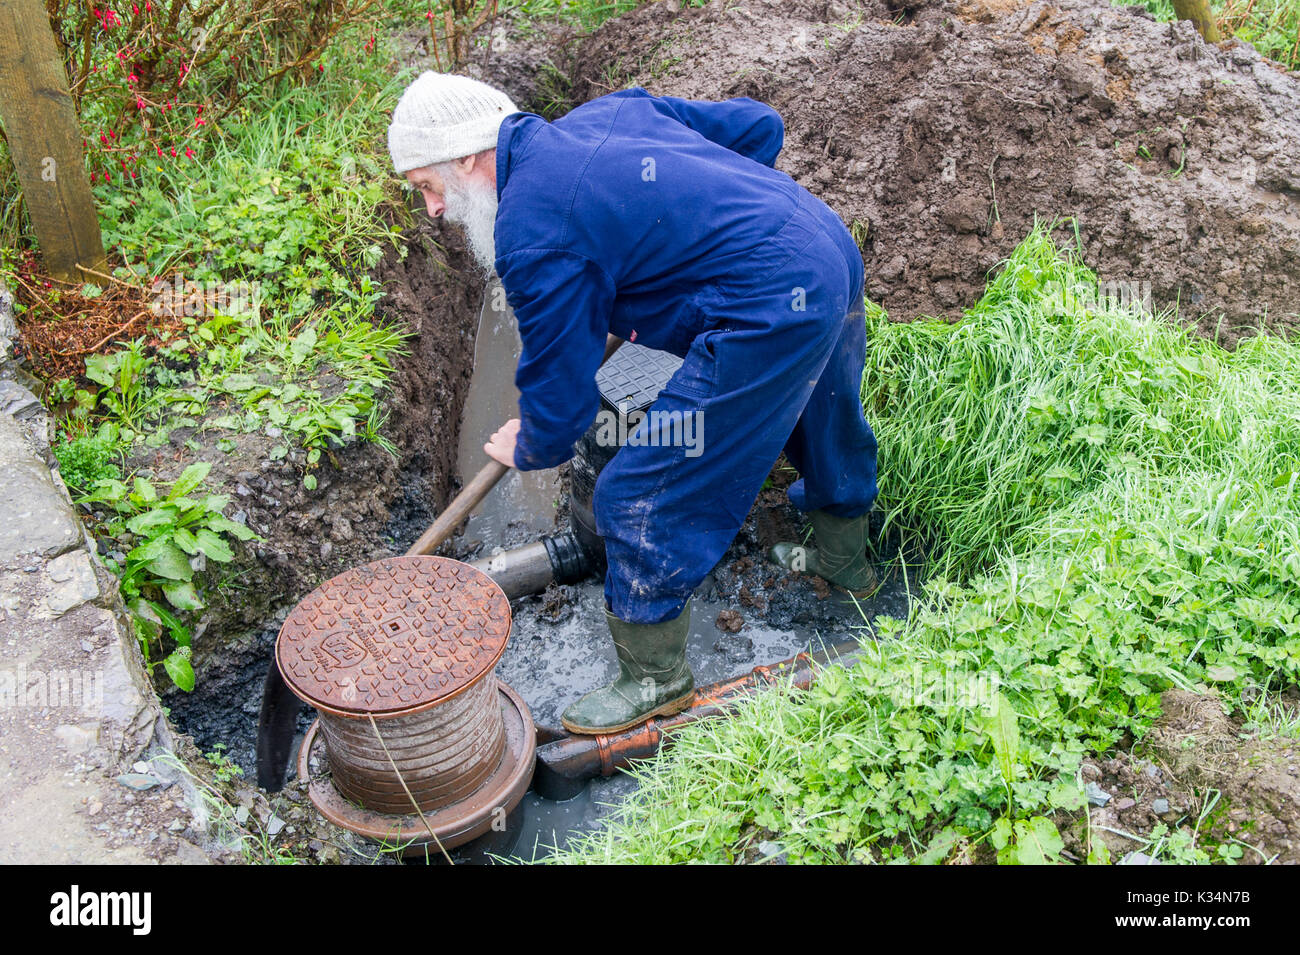 Plumber digs a hole to repair blocked drains. - Stock Image